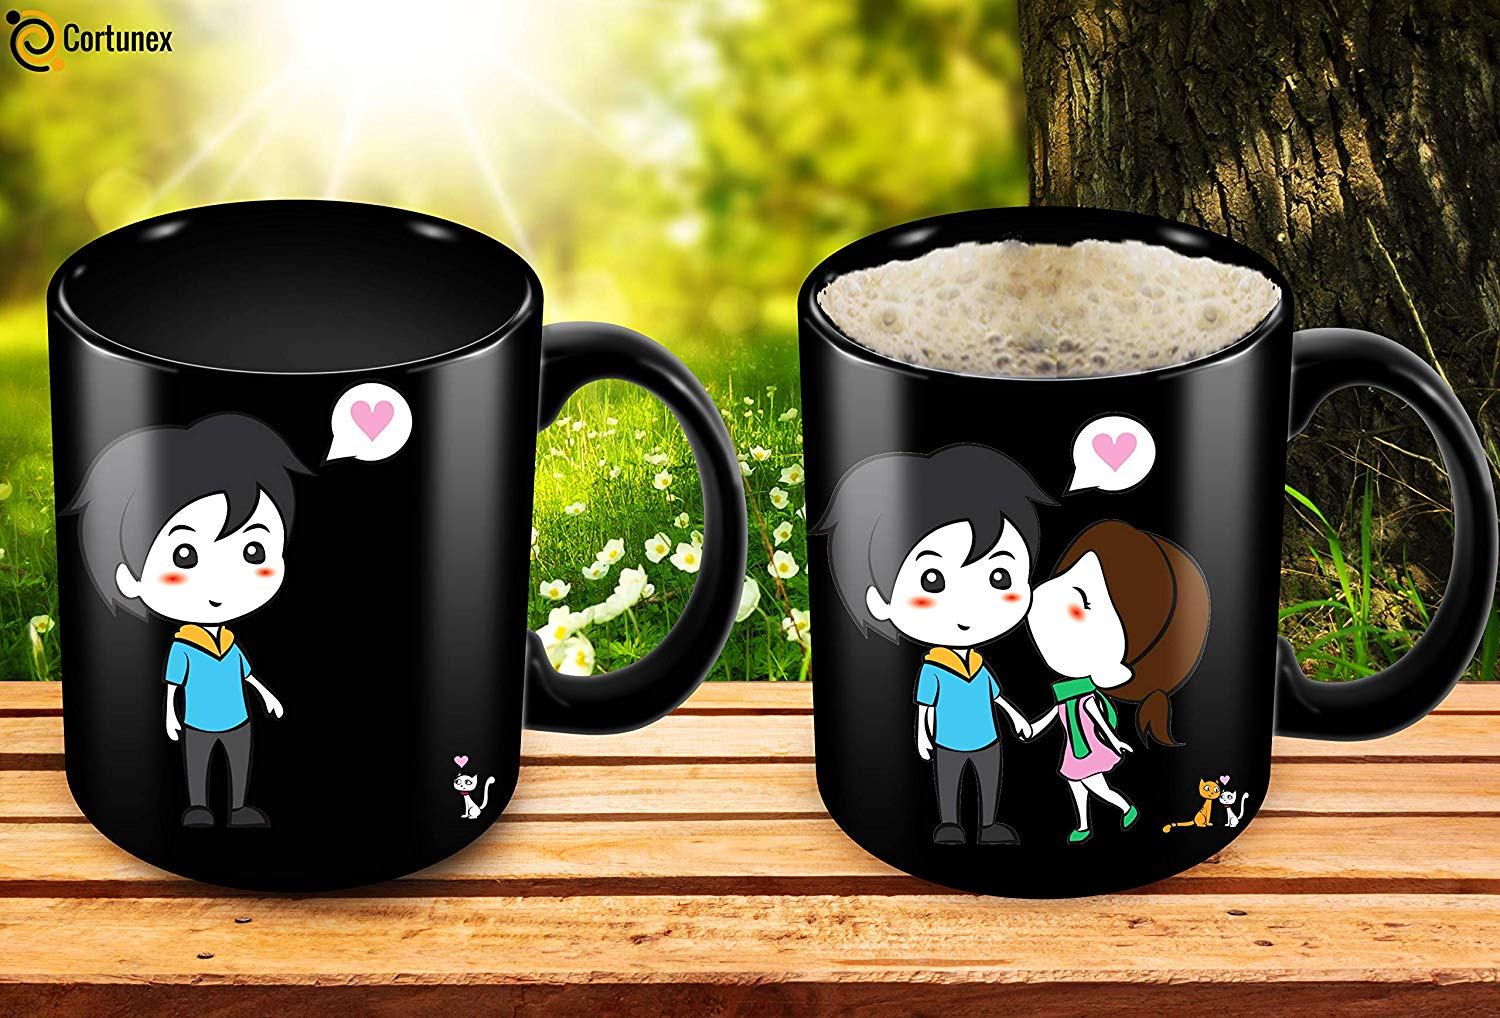 Heat Sensitive Mug Color Changing Coffee Mug Funny Coffee Cup Lovely Cartoon Couples Design Birthday Gift Idea F B07D21XCT3 5